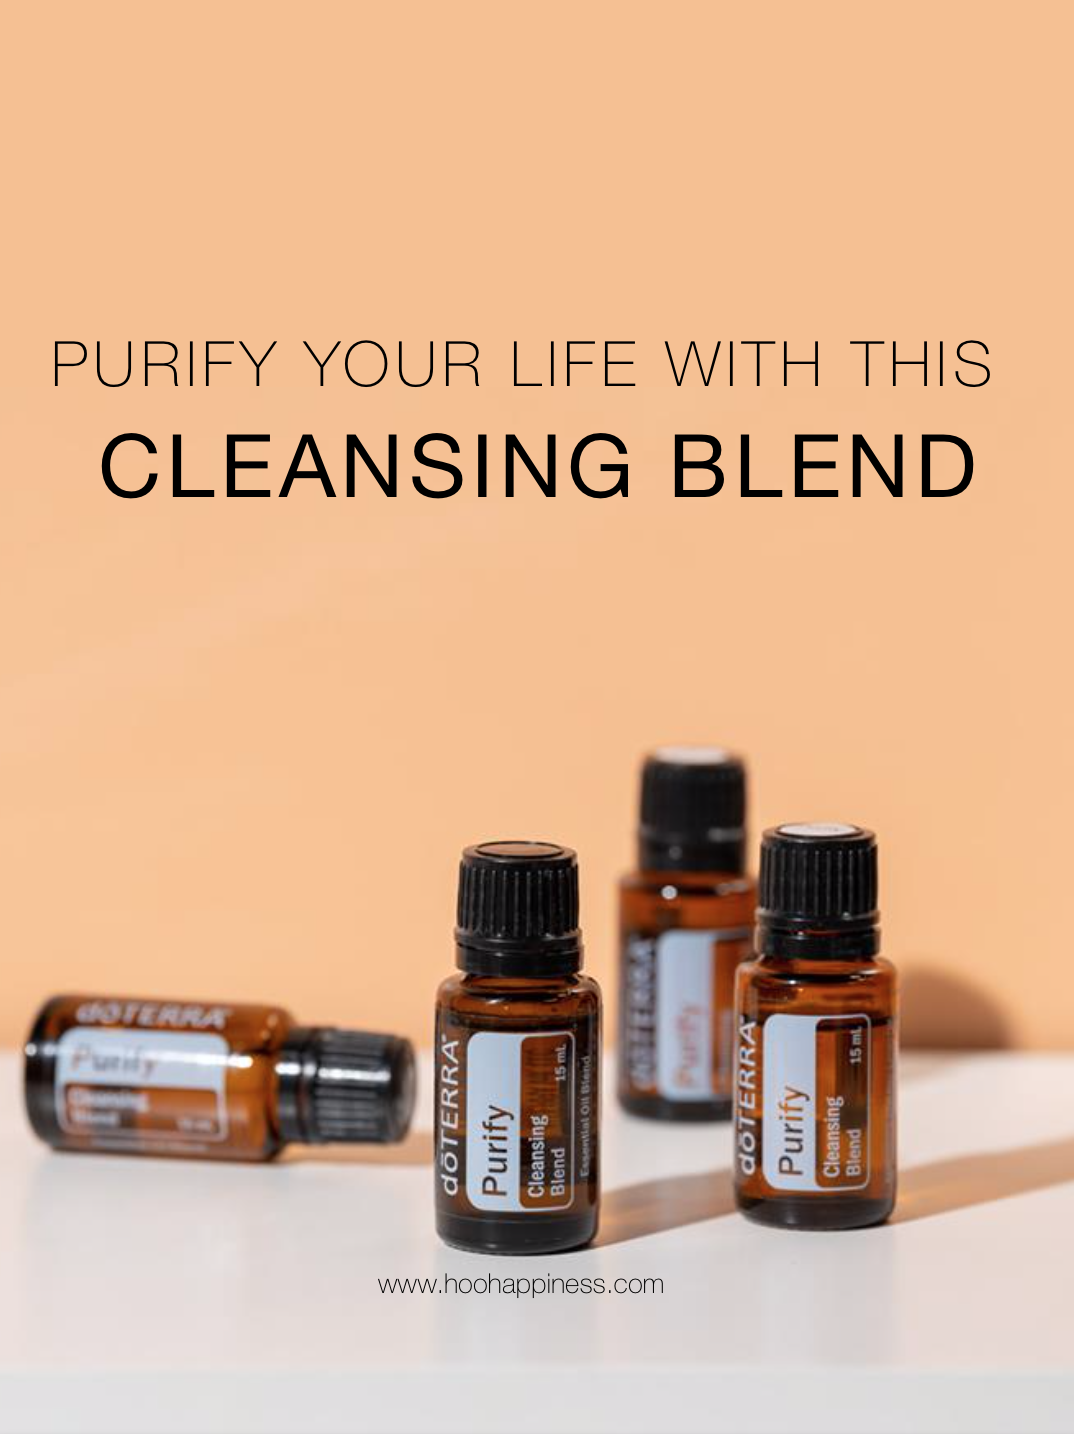 Purify your life with this cleansing blend, doterra essential oils, Bogo blog